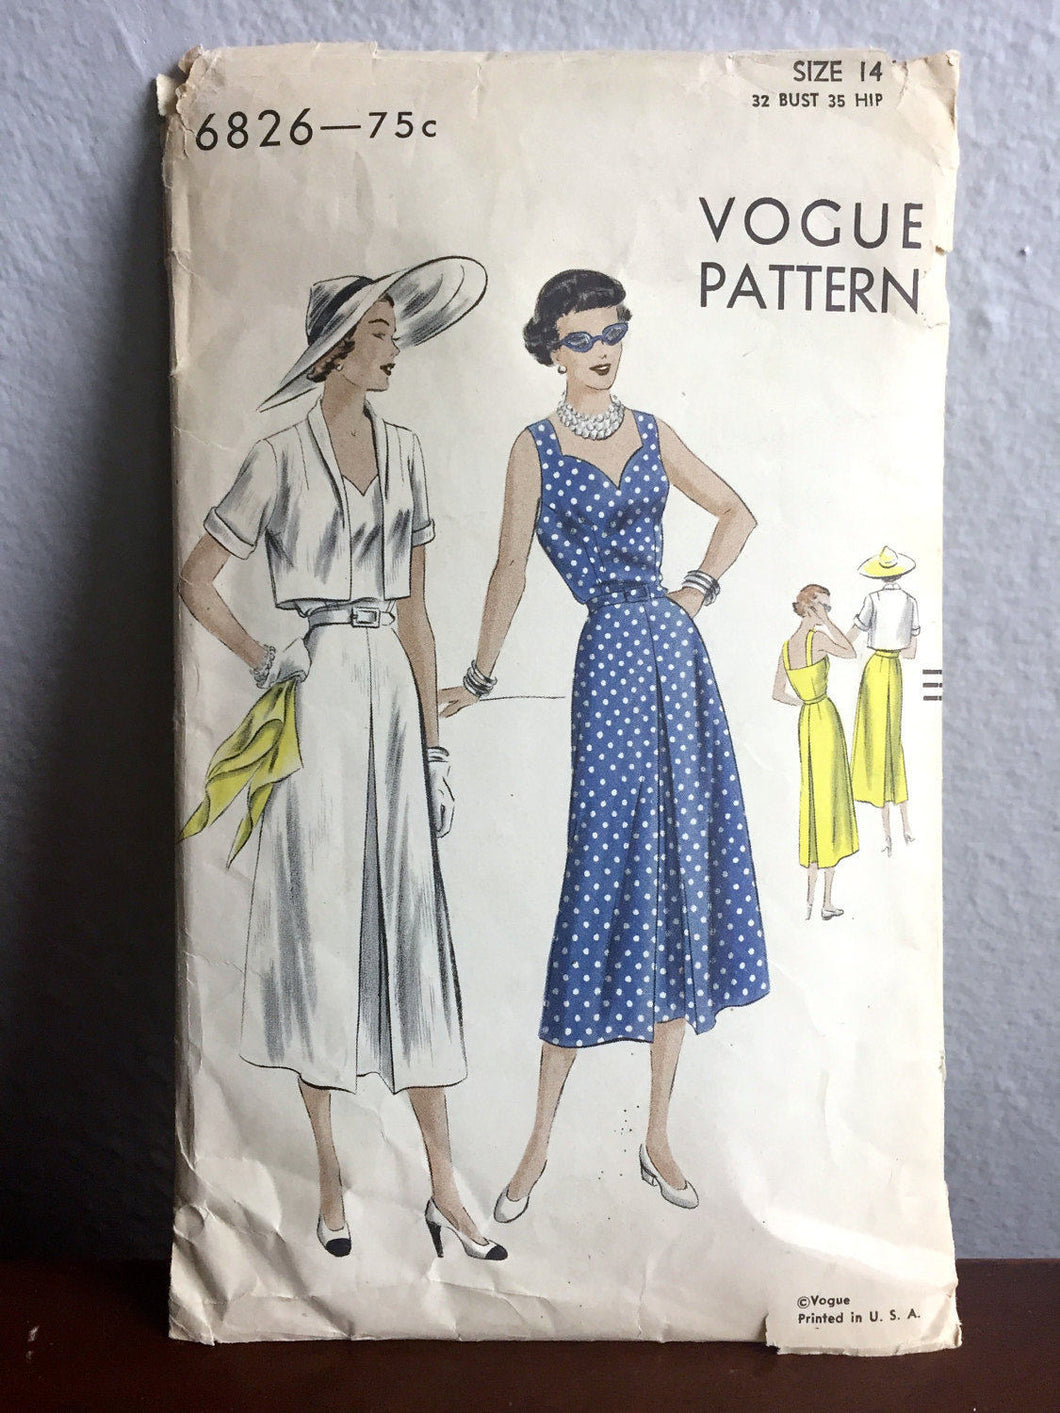 1940's Vogue Day Dress with Sweetheart Neckline and jacket pattern - Bust 32